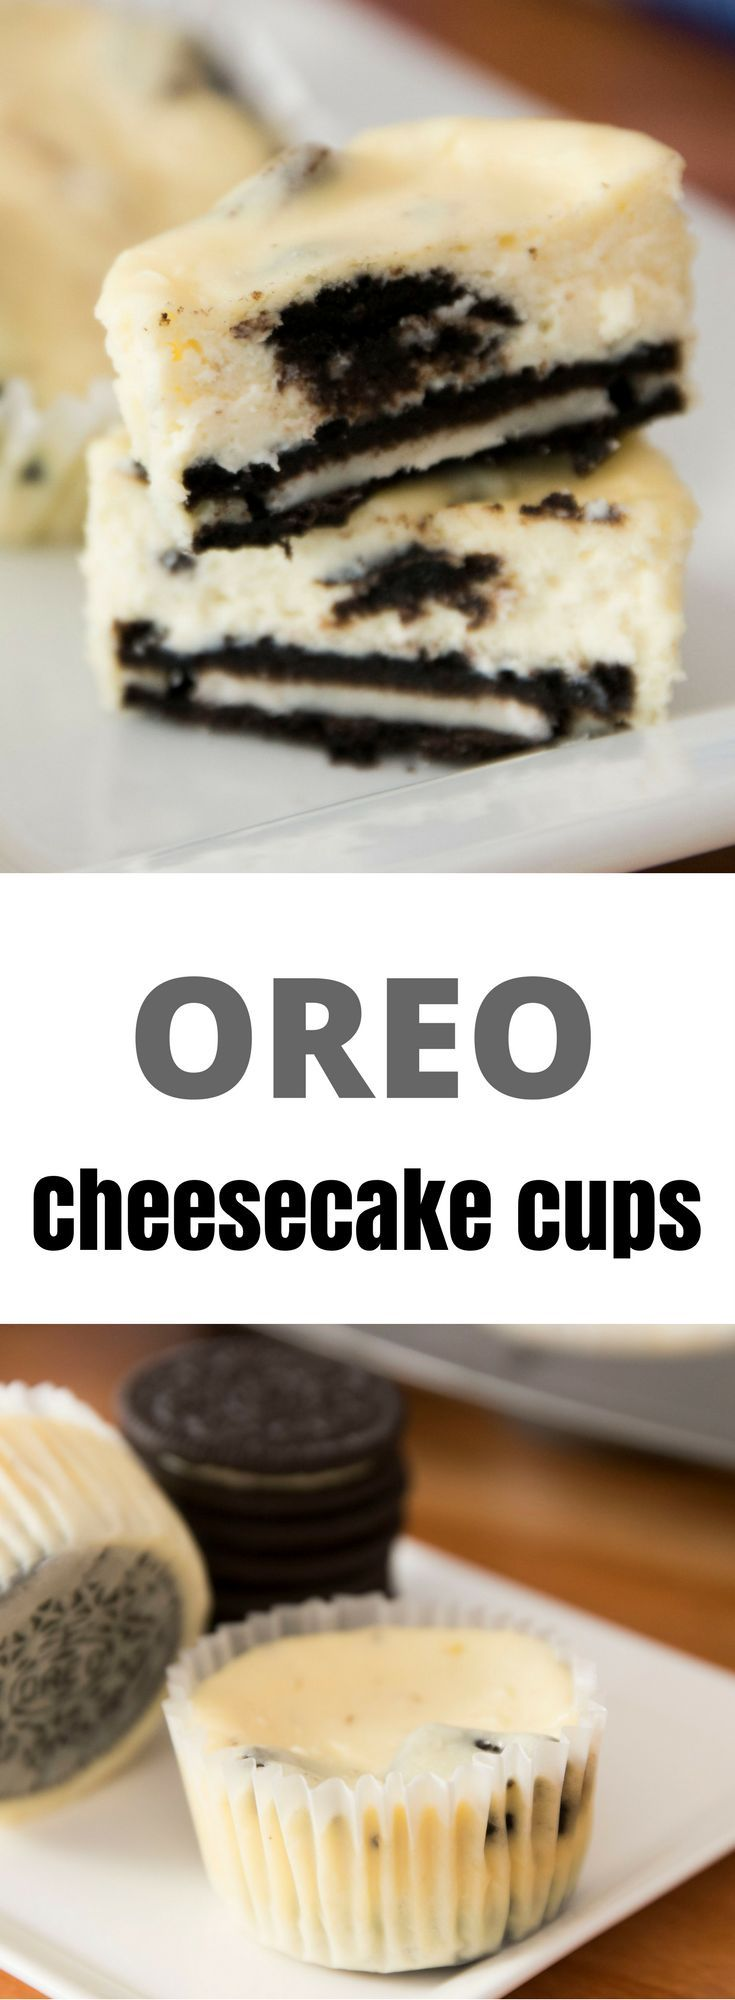 This Oreo Cheesecake Cups recipe is easy to make and amazingly delicious. It's also fun to hide the Oreo at the bottom of the cup!